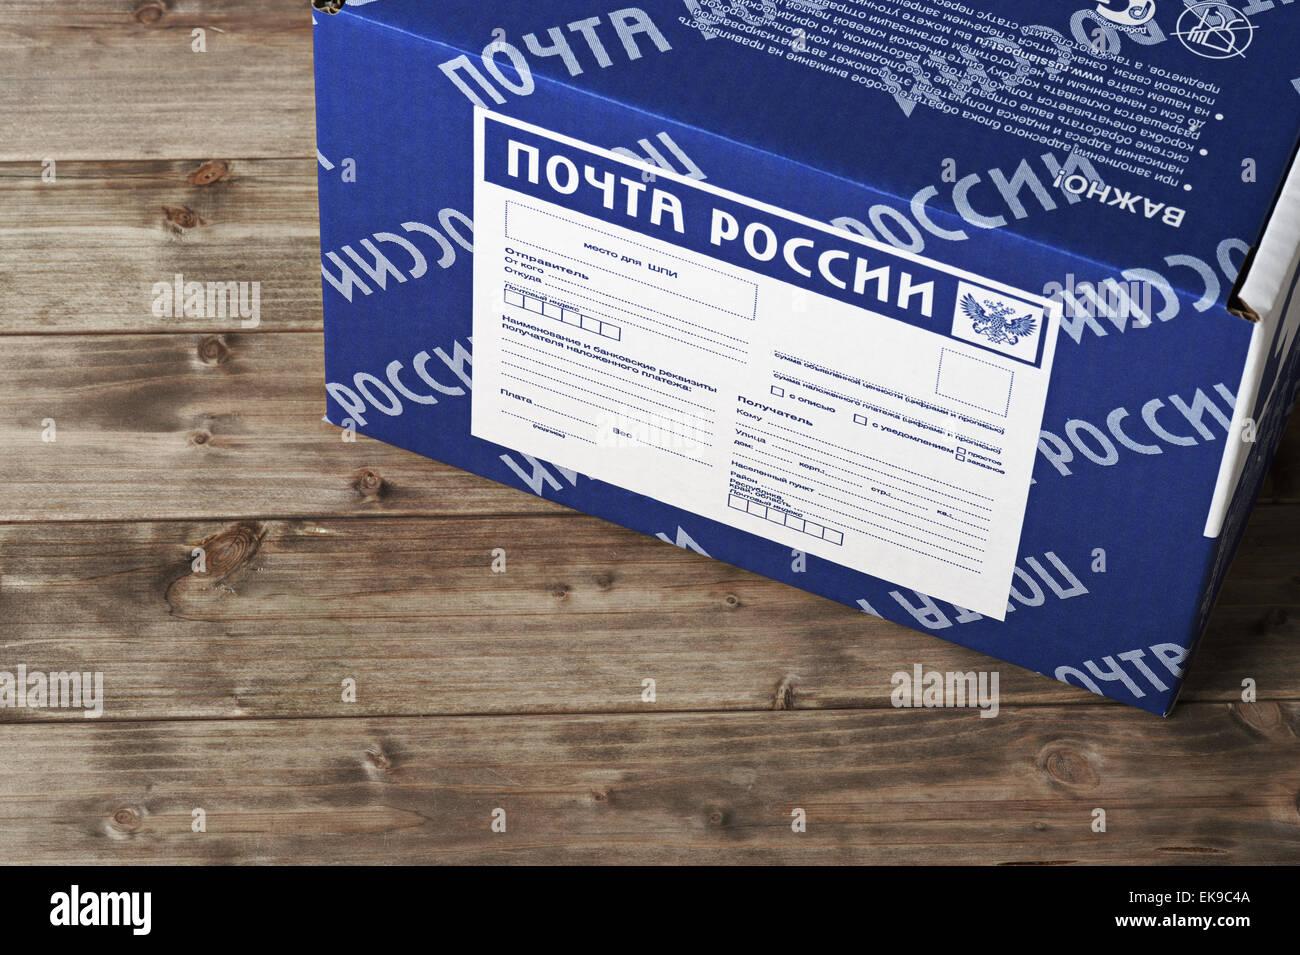 Blue mail box of the Russian post, the postal service of the Russian federations - Stock Image